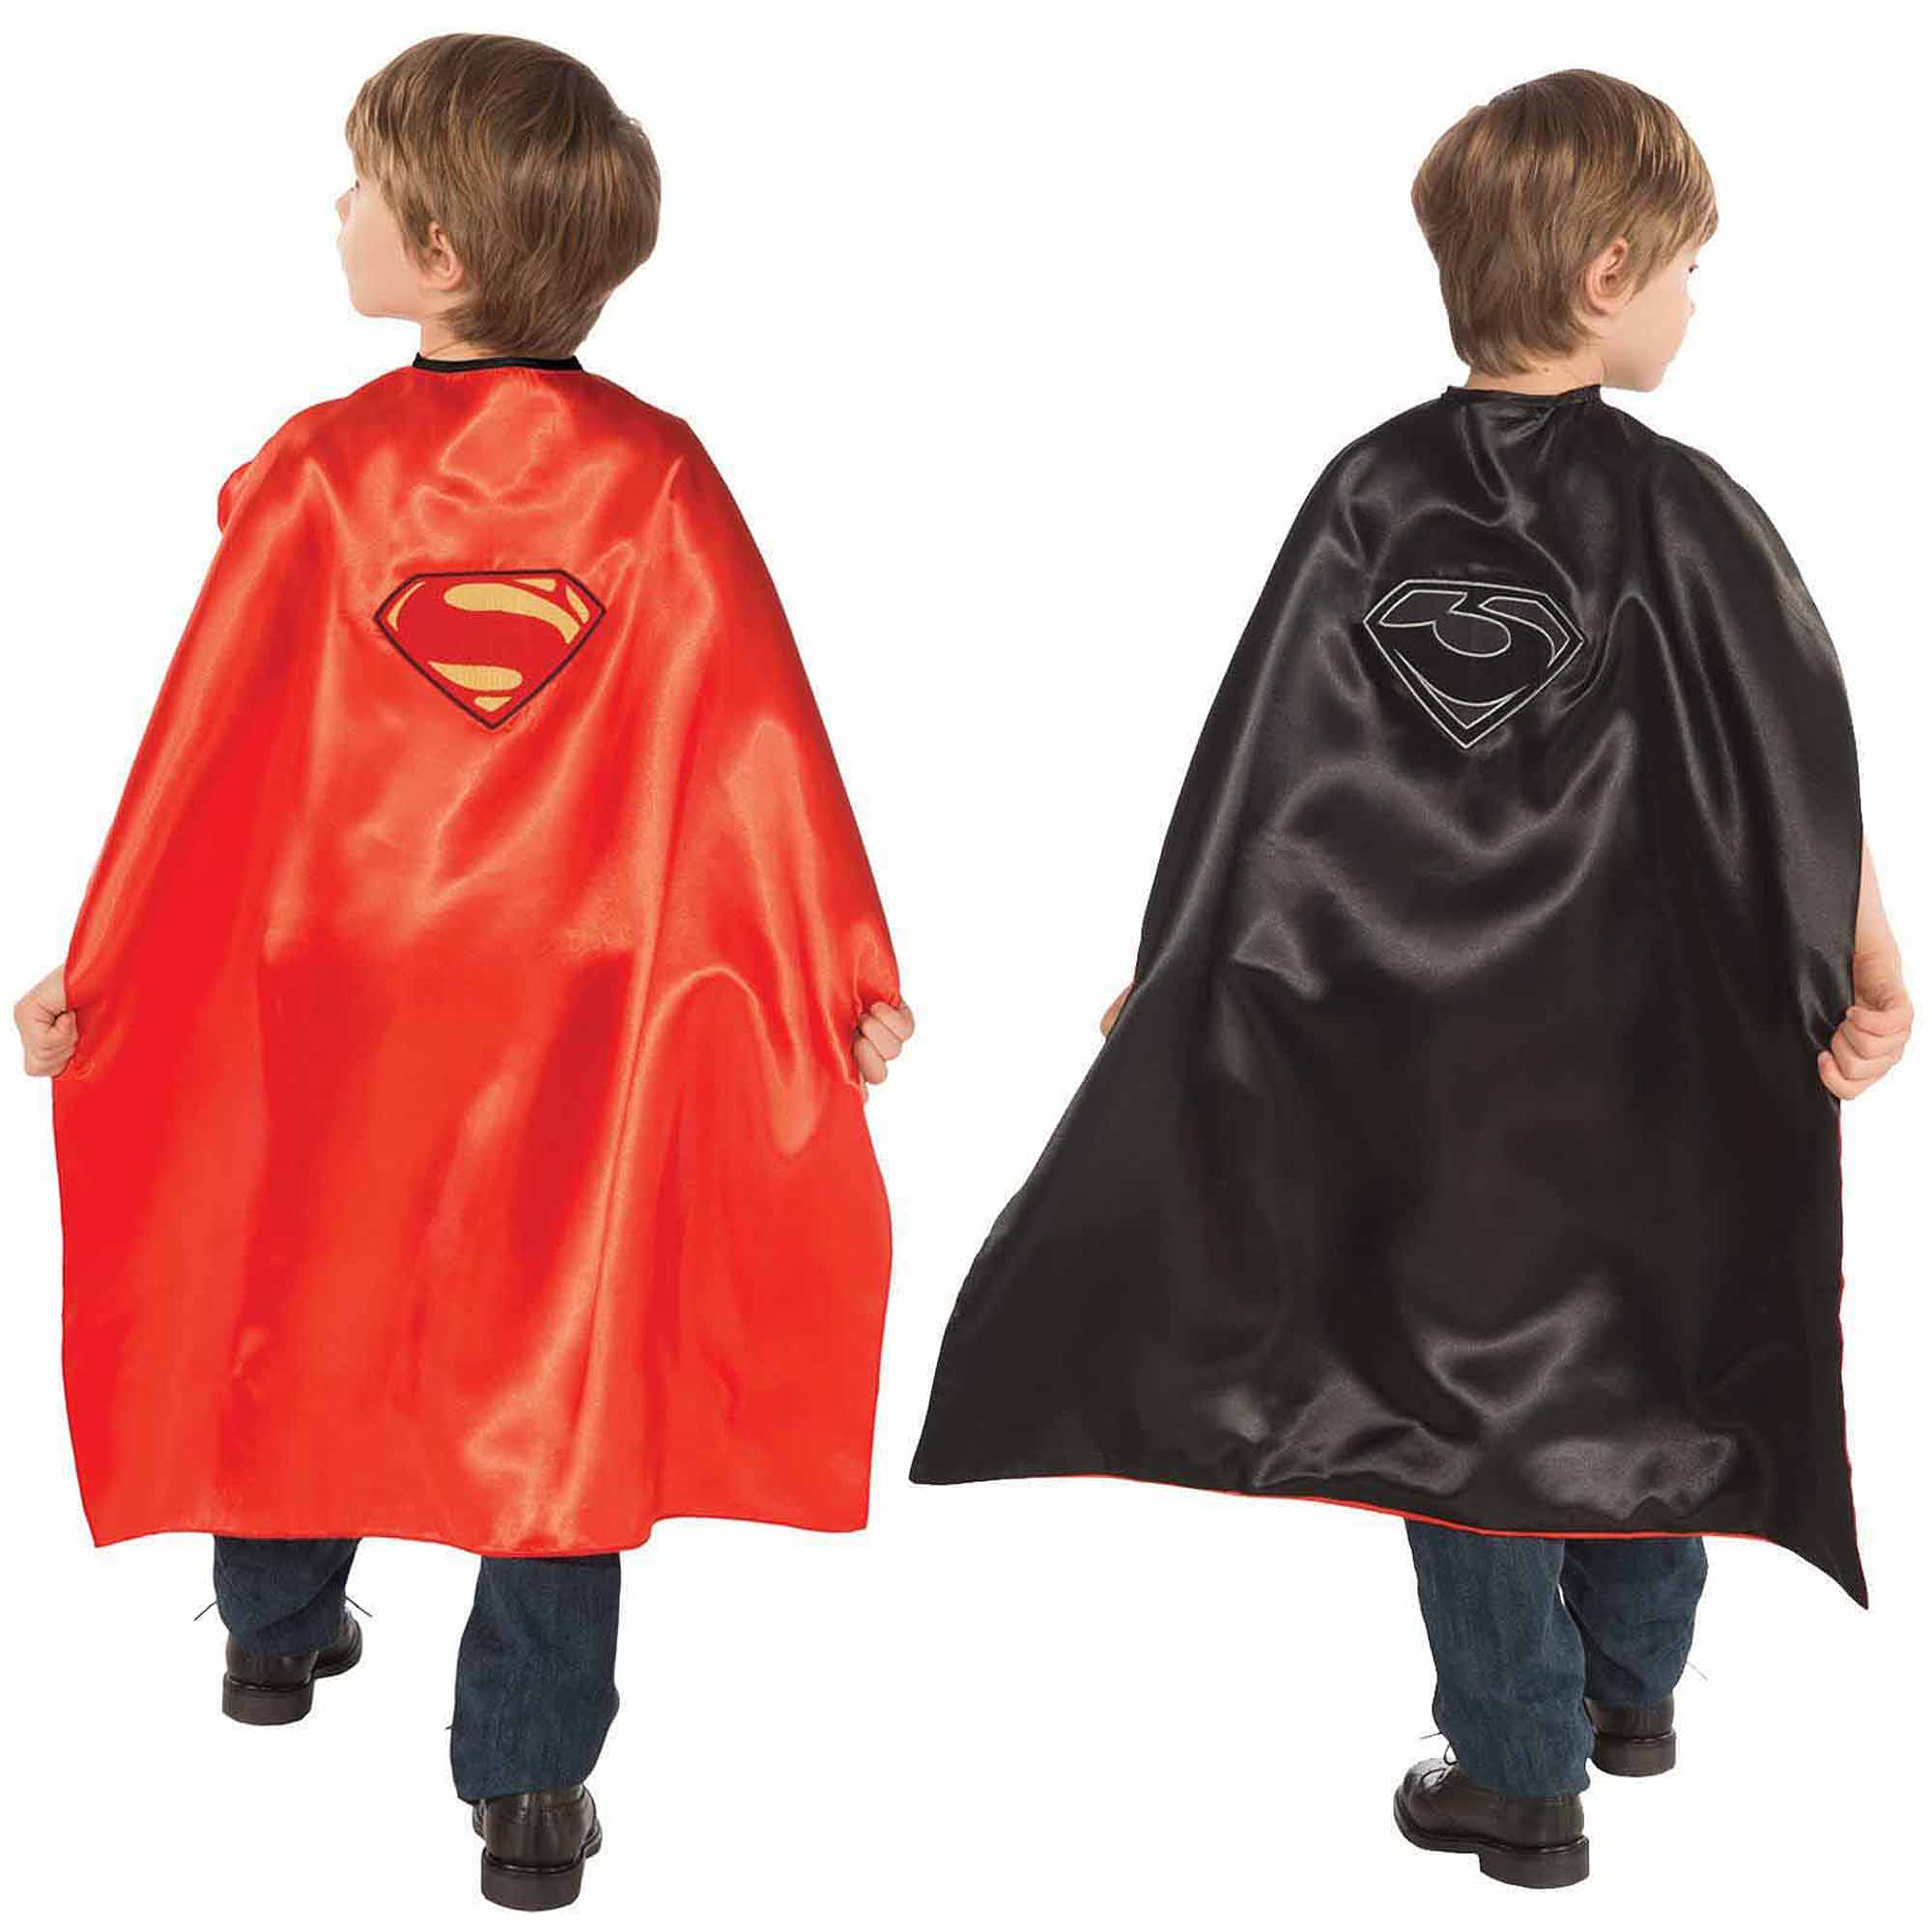 Superman Man of Steel Superman/General Zod Reversible Cape Child Halloween Costume